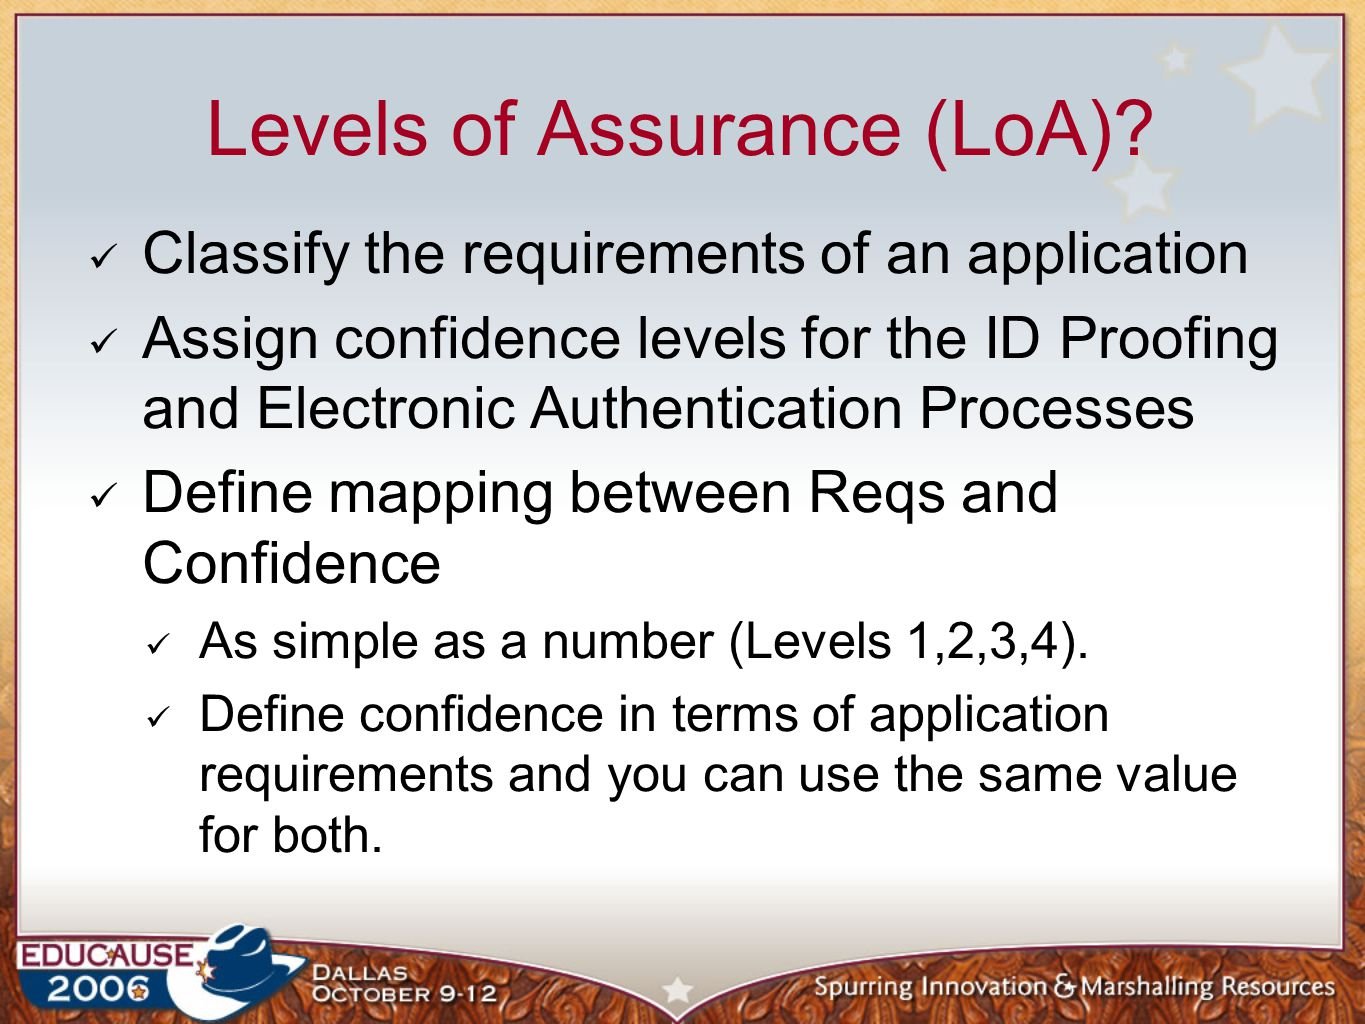 Levels of Assurance (LoA).